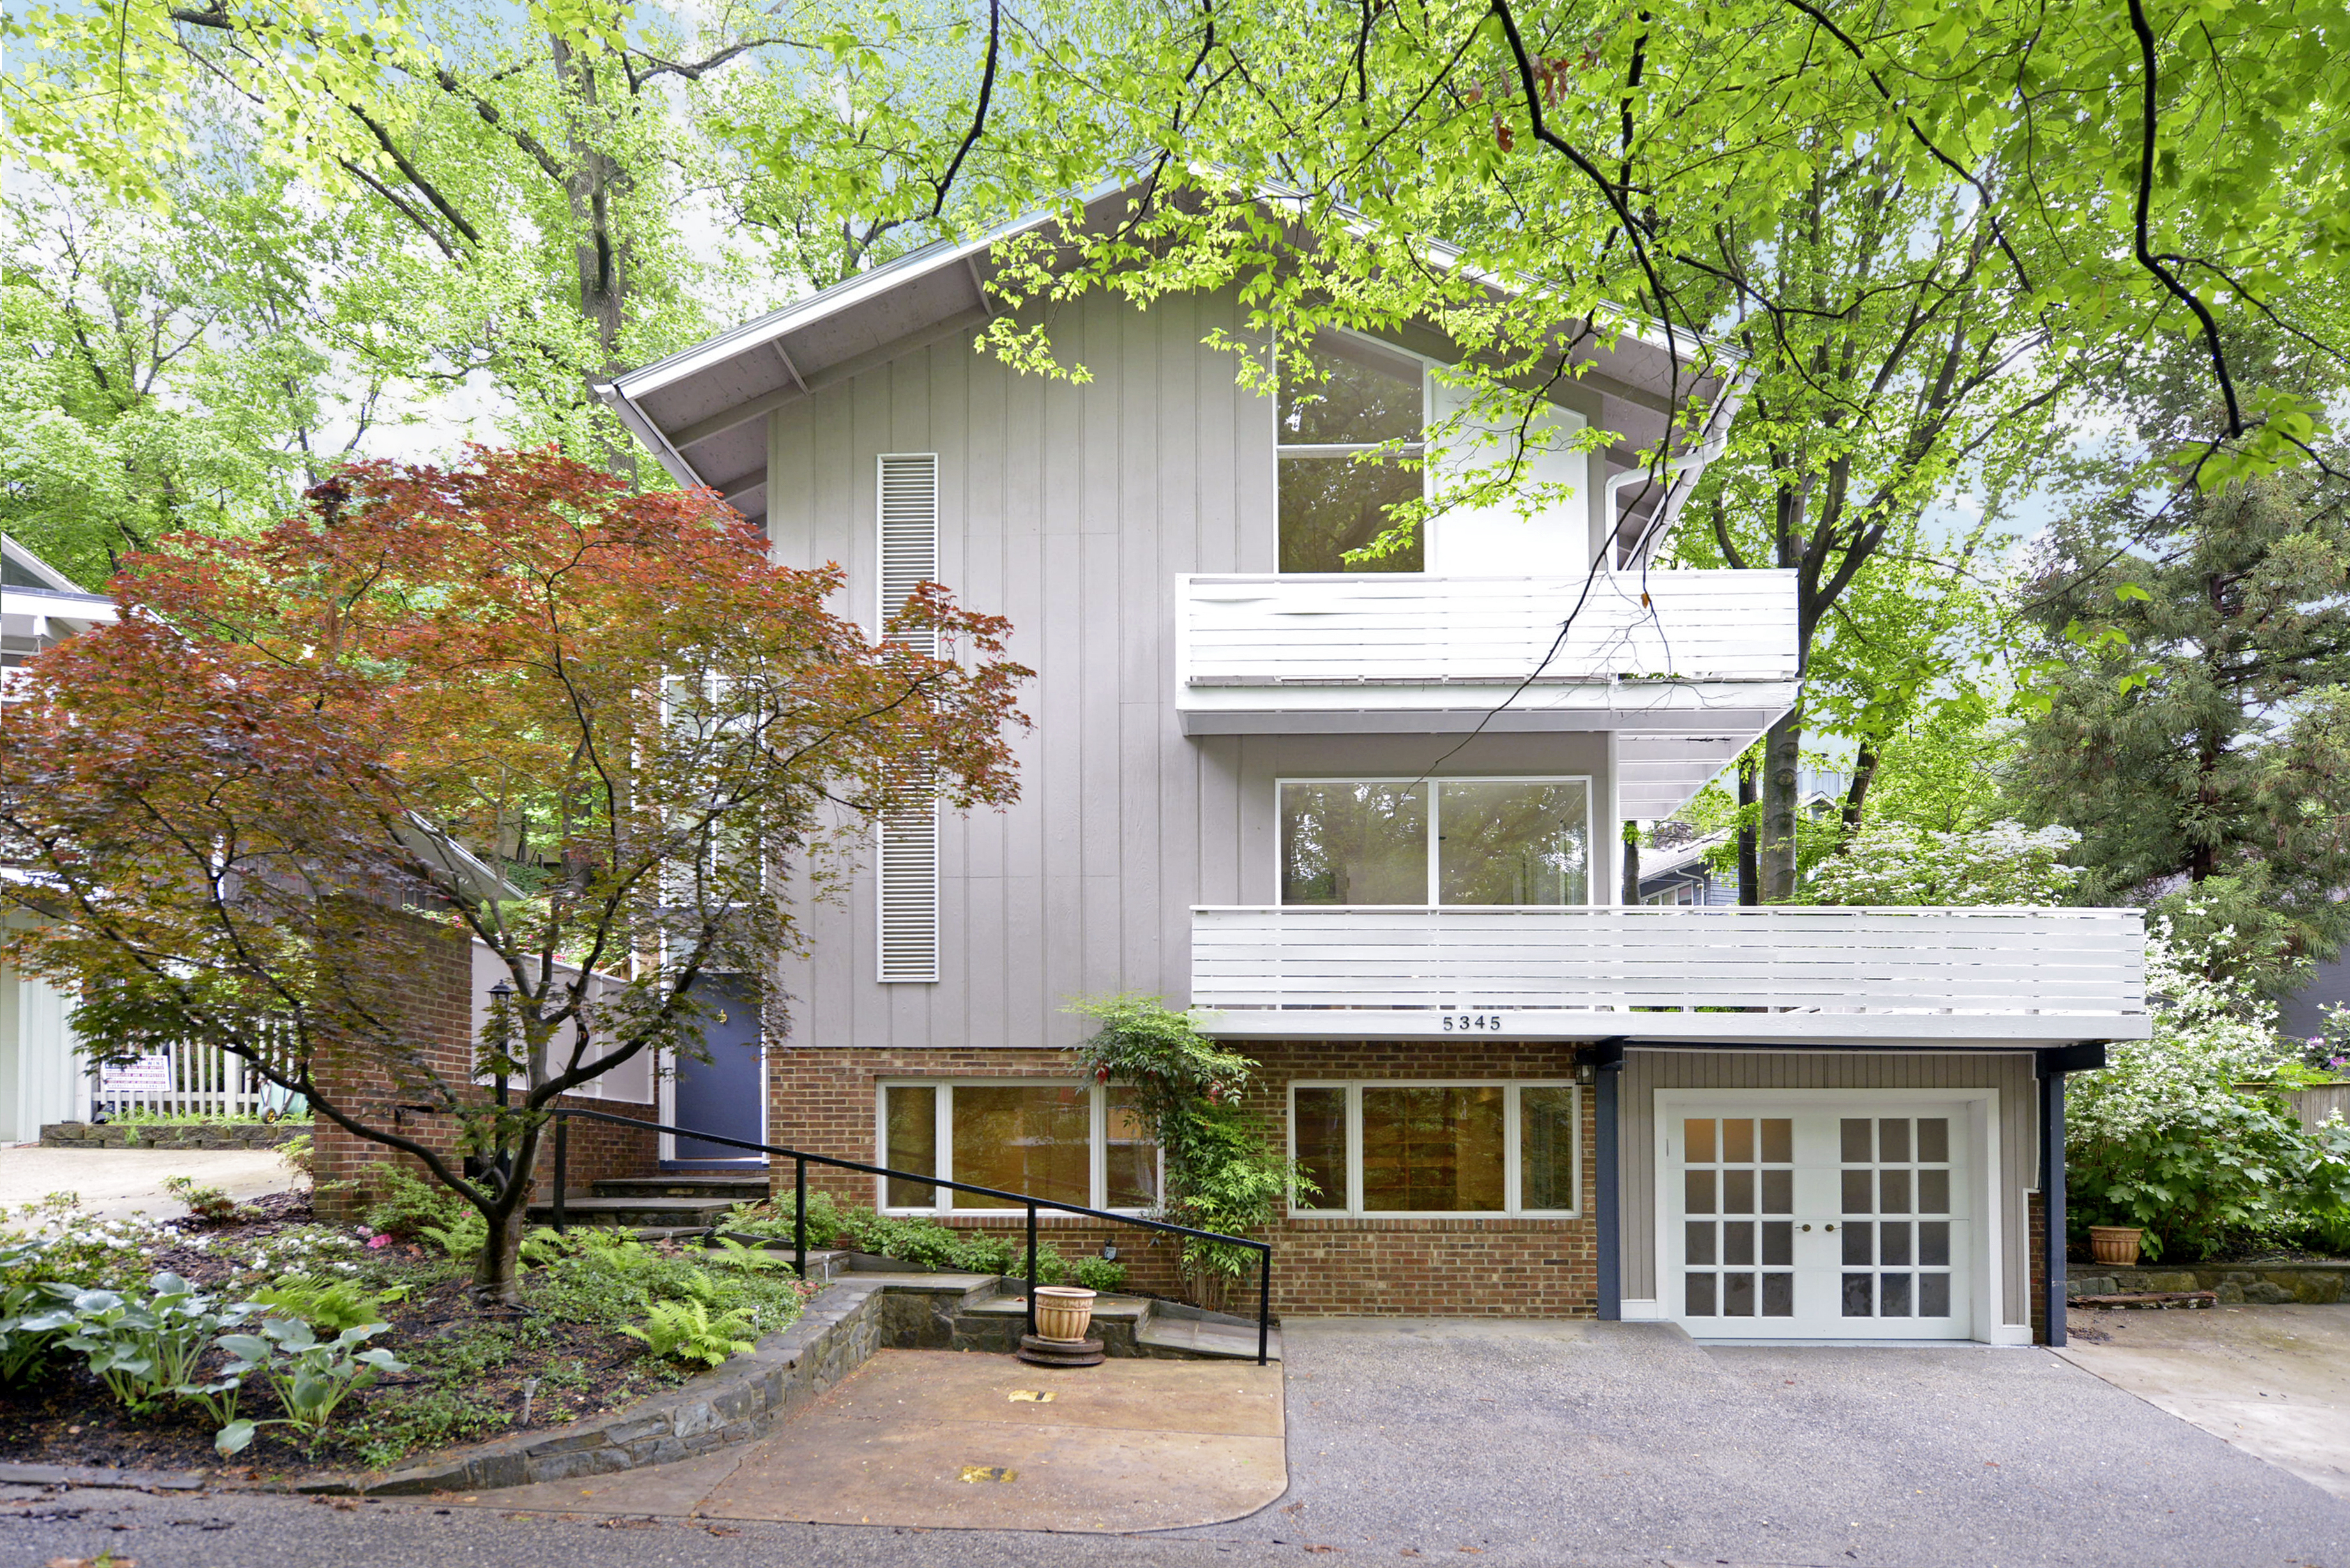 mid century modern oasis in the palisades kent bccdc real estate 4 bedrooms 3 1 2 baths renovated kitchen open to family room with fireplace wrap around porch with views of the lush green garden